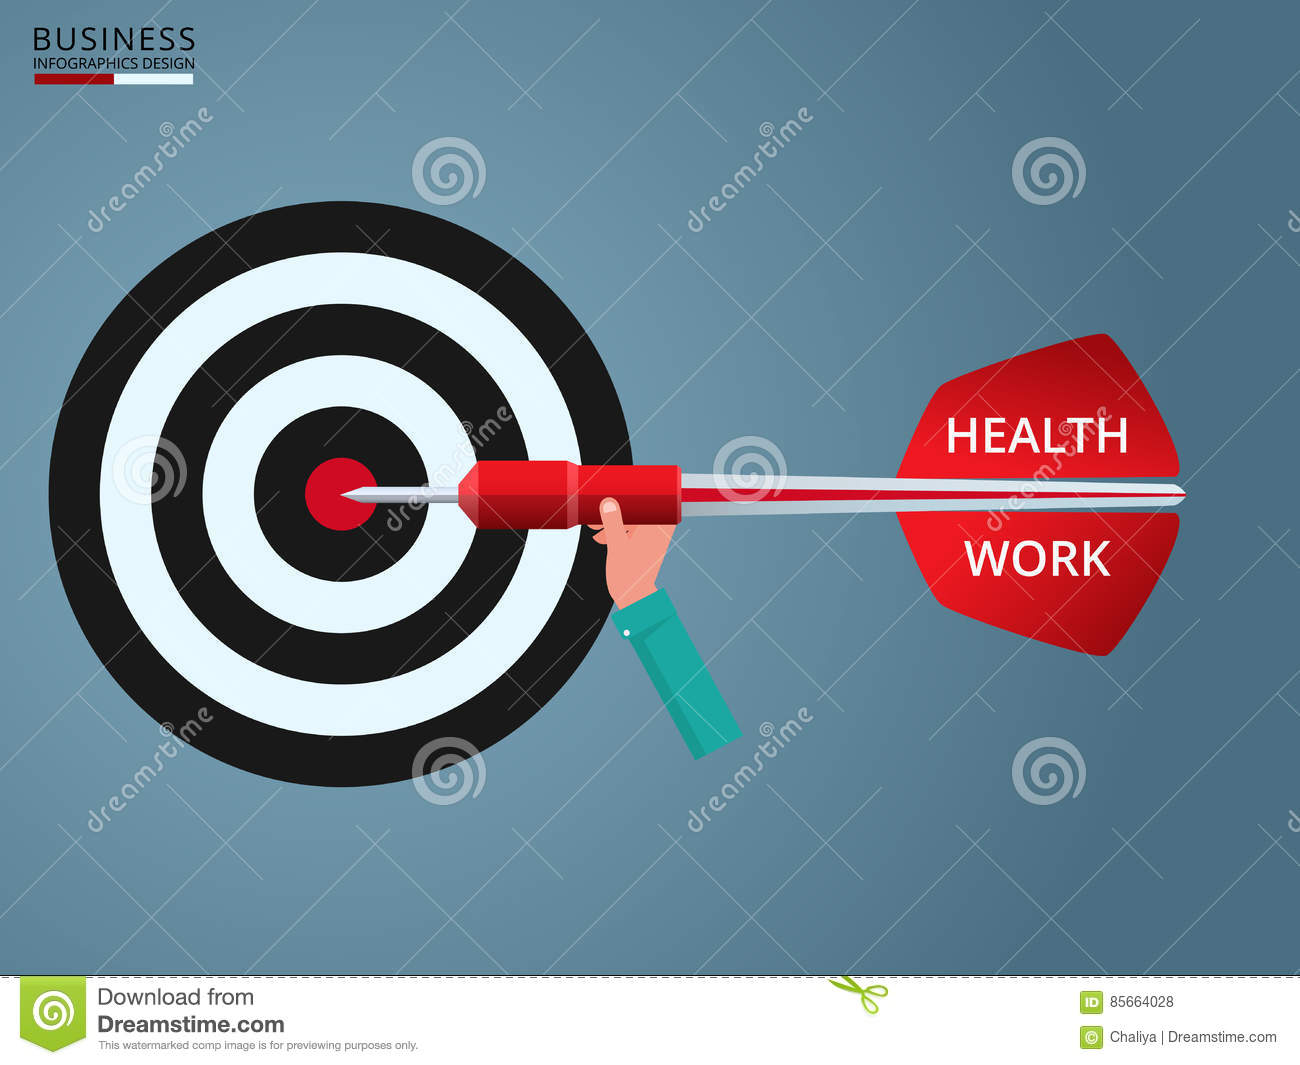 Goal setting. Hand holding dart with text ` Health, Work` to target. Concept of work and life balance.